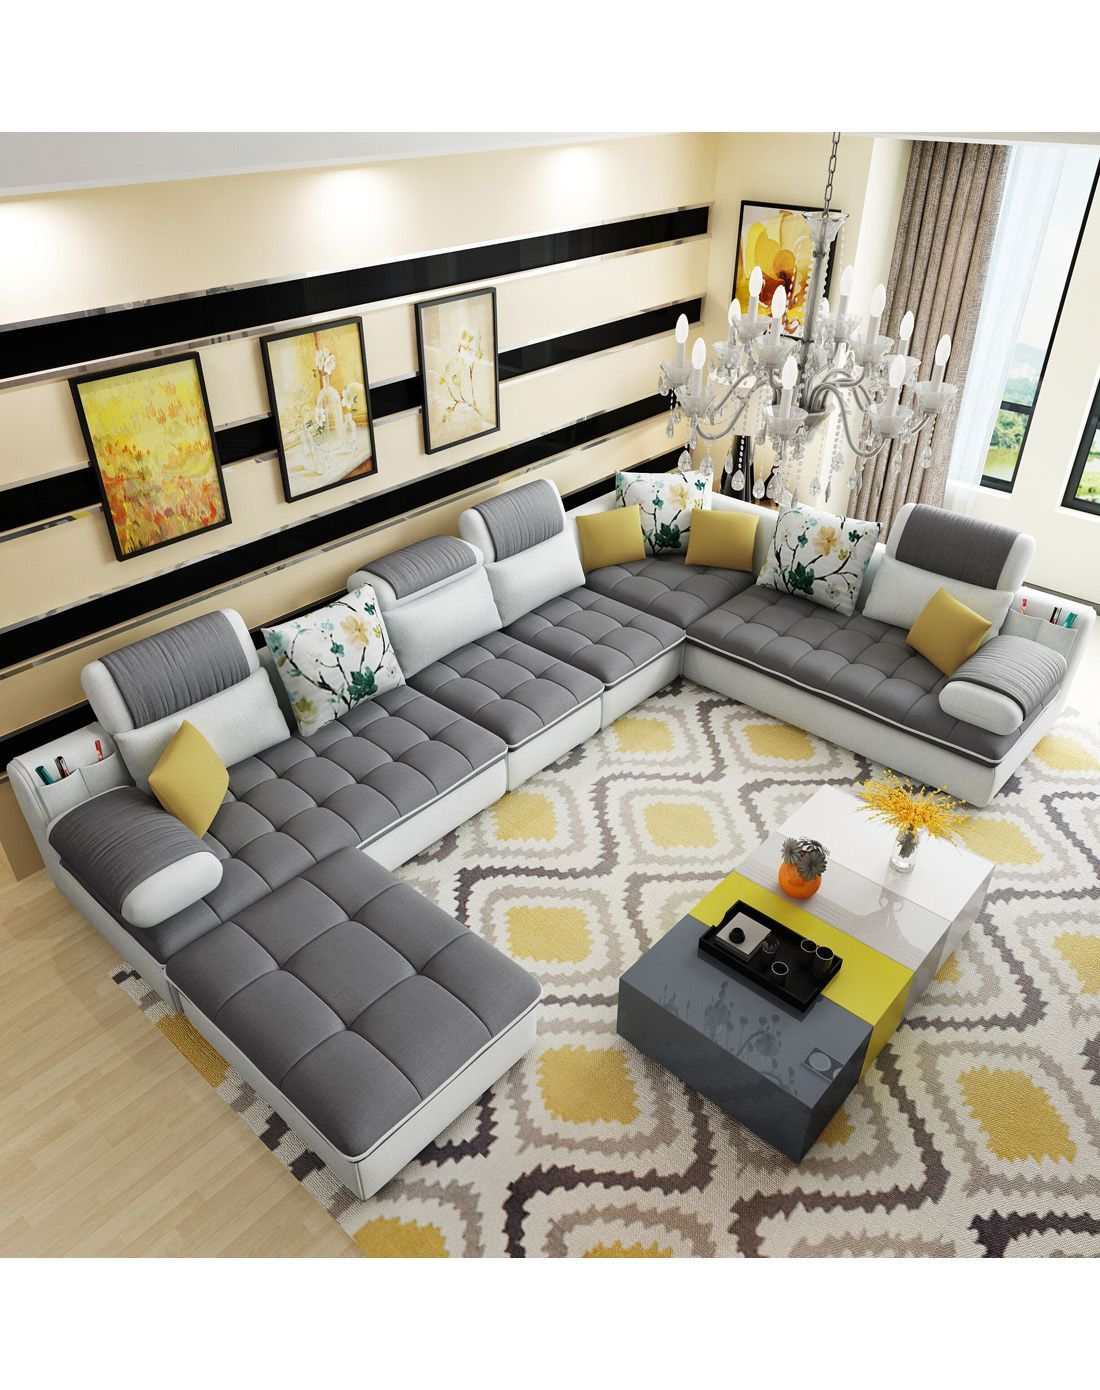 Yalin Furniture Special Shipping Large Size Living Room Straight Six Sets Of Removable Living Room Sofa Design Luxury Sofa Design Furniture Design Living Room